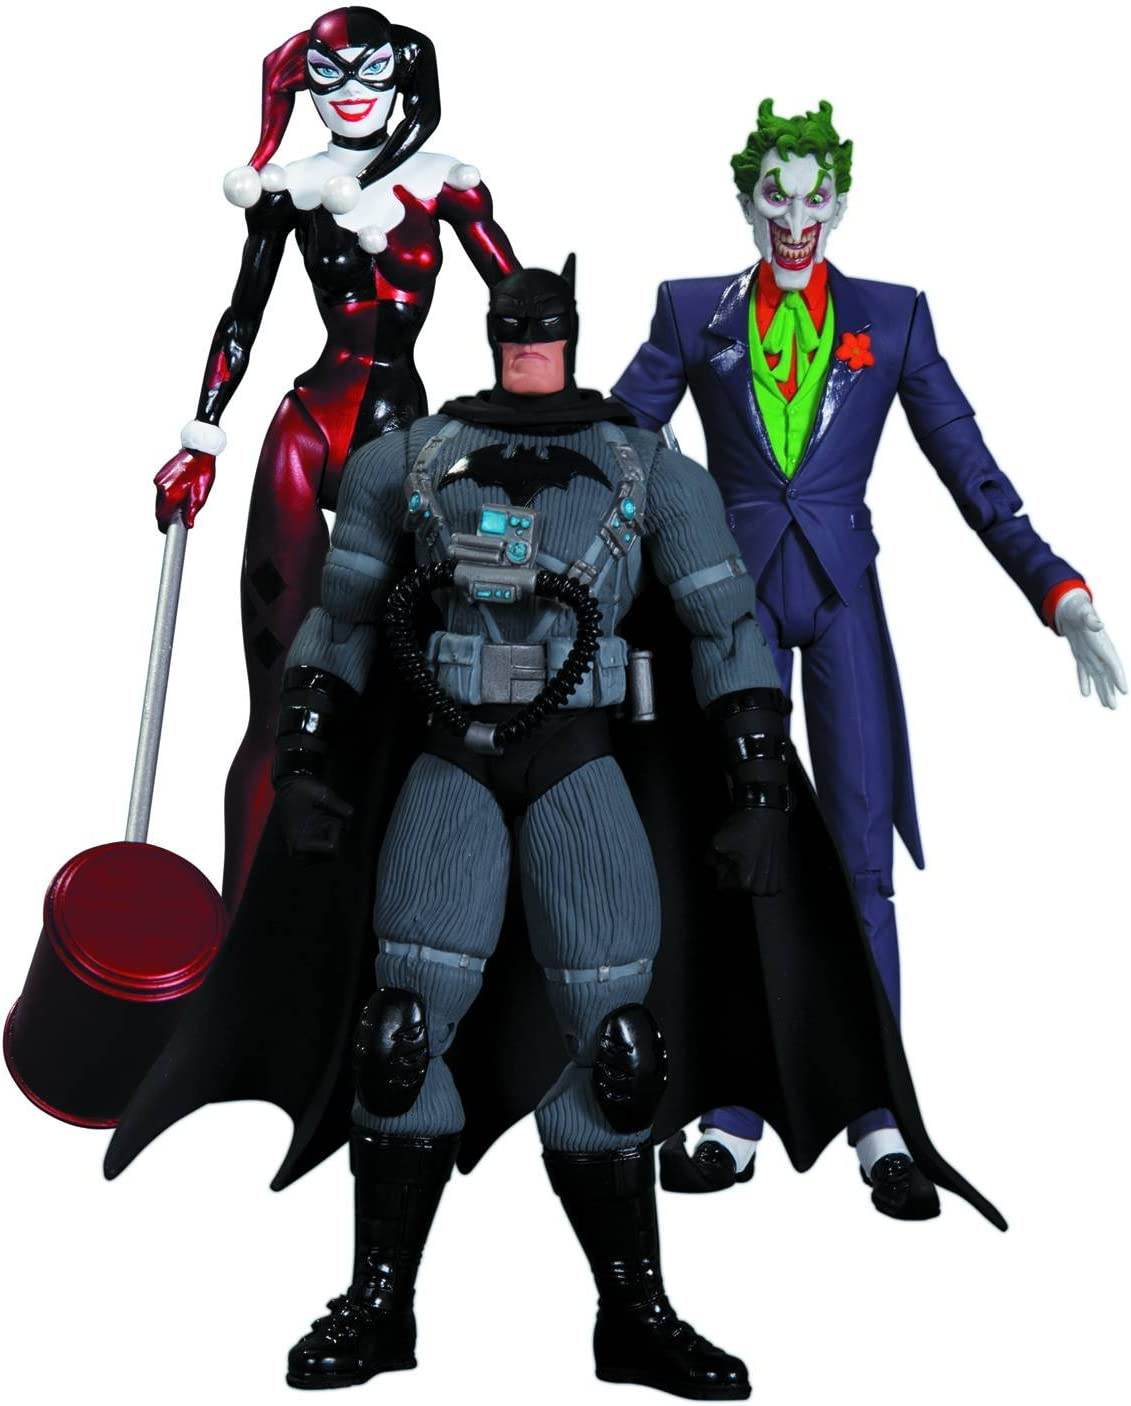 Amazon Com Dc Collectibles Hush The Joker Harley Quinn And Stealth Batman Action Figure Playset 3 Pack Toys Games